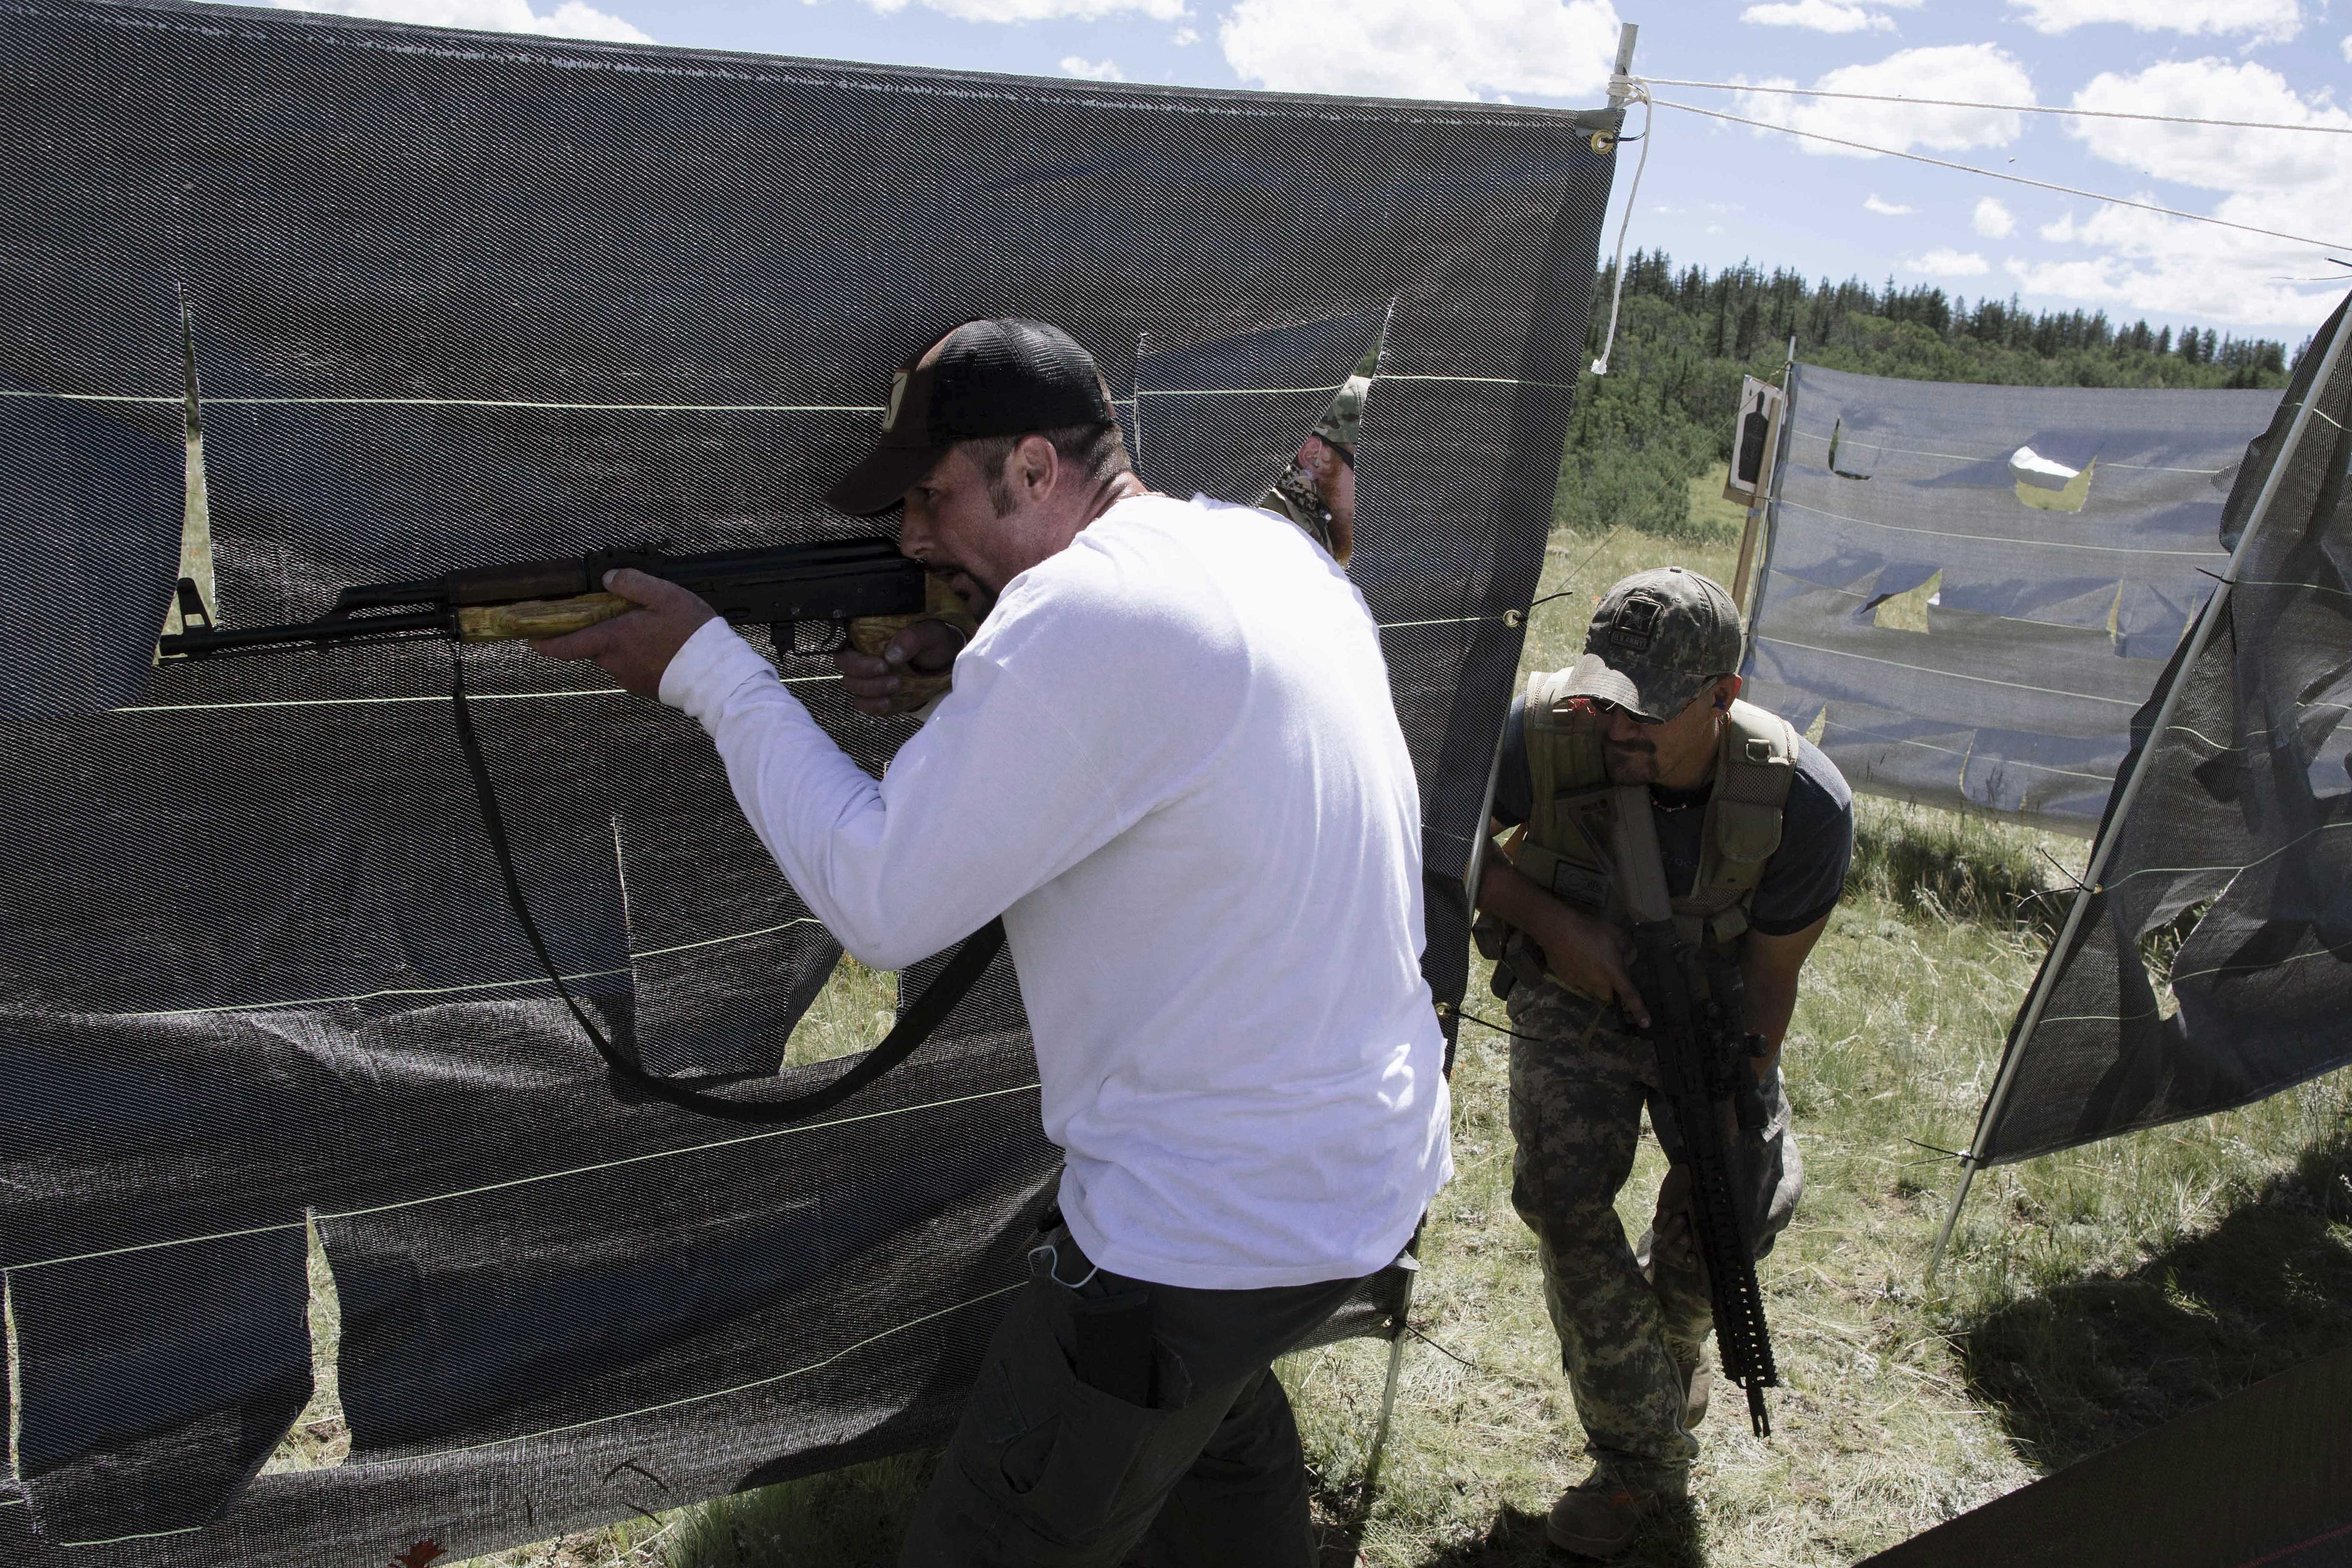 Two men holding semiautomatic rifles move through an outdoor close quarters battle (CQB) course during a militia drill outside Denver, Colorado in 2015.